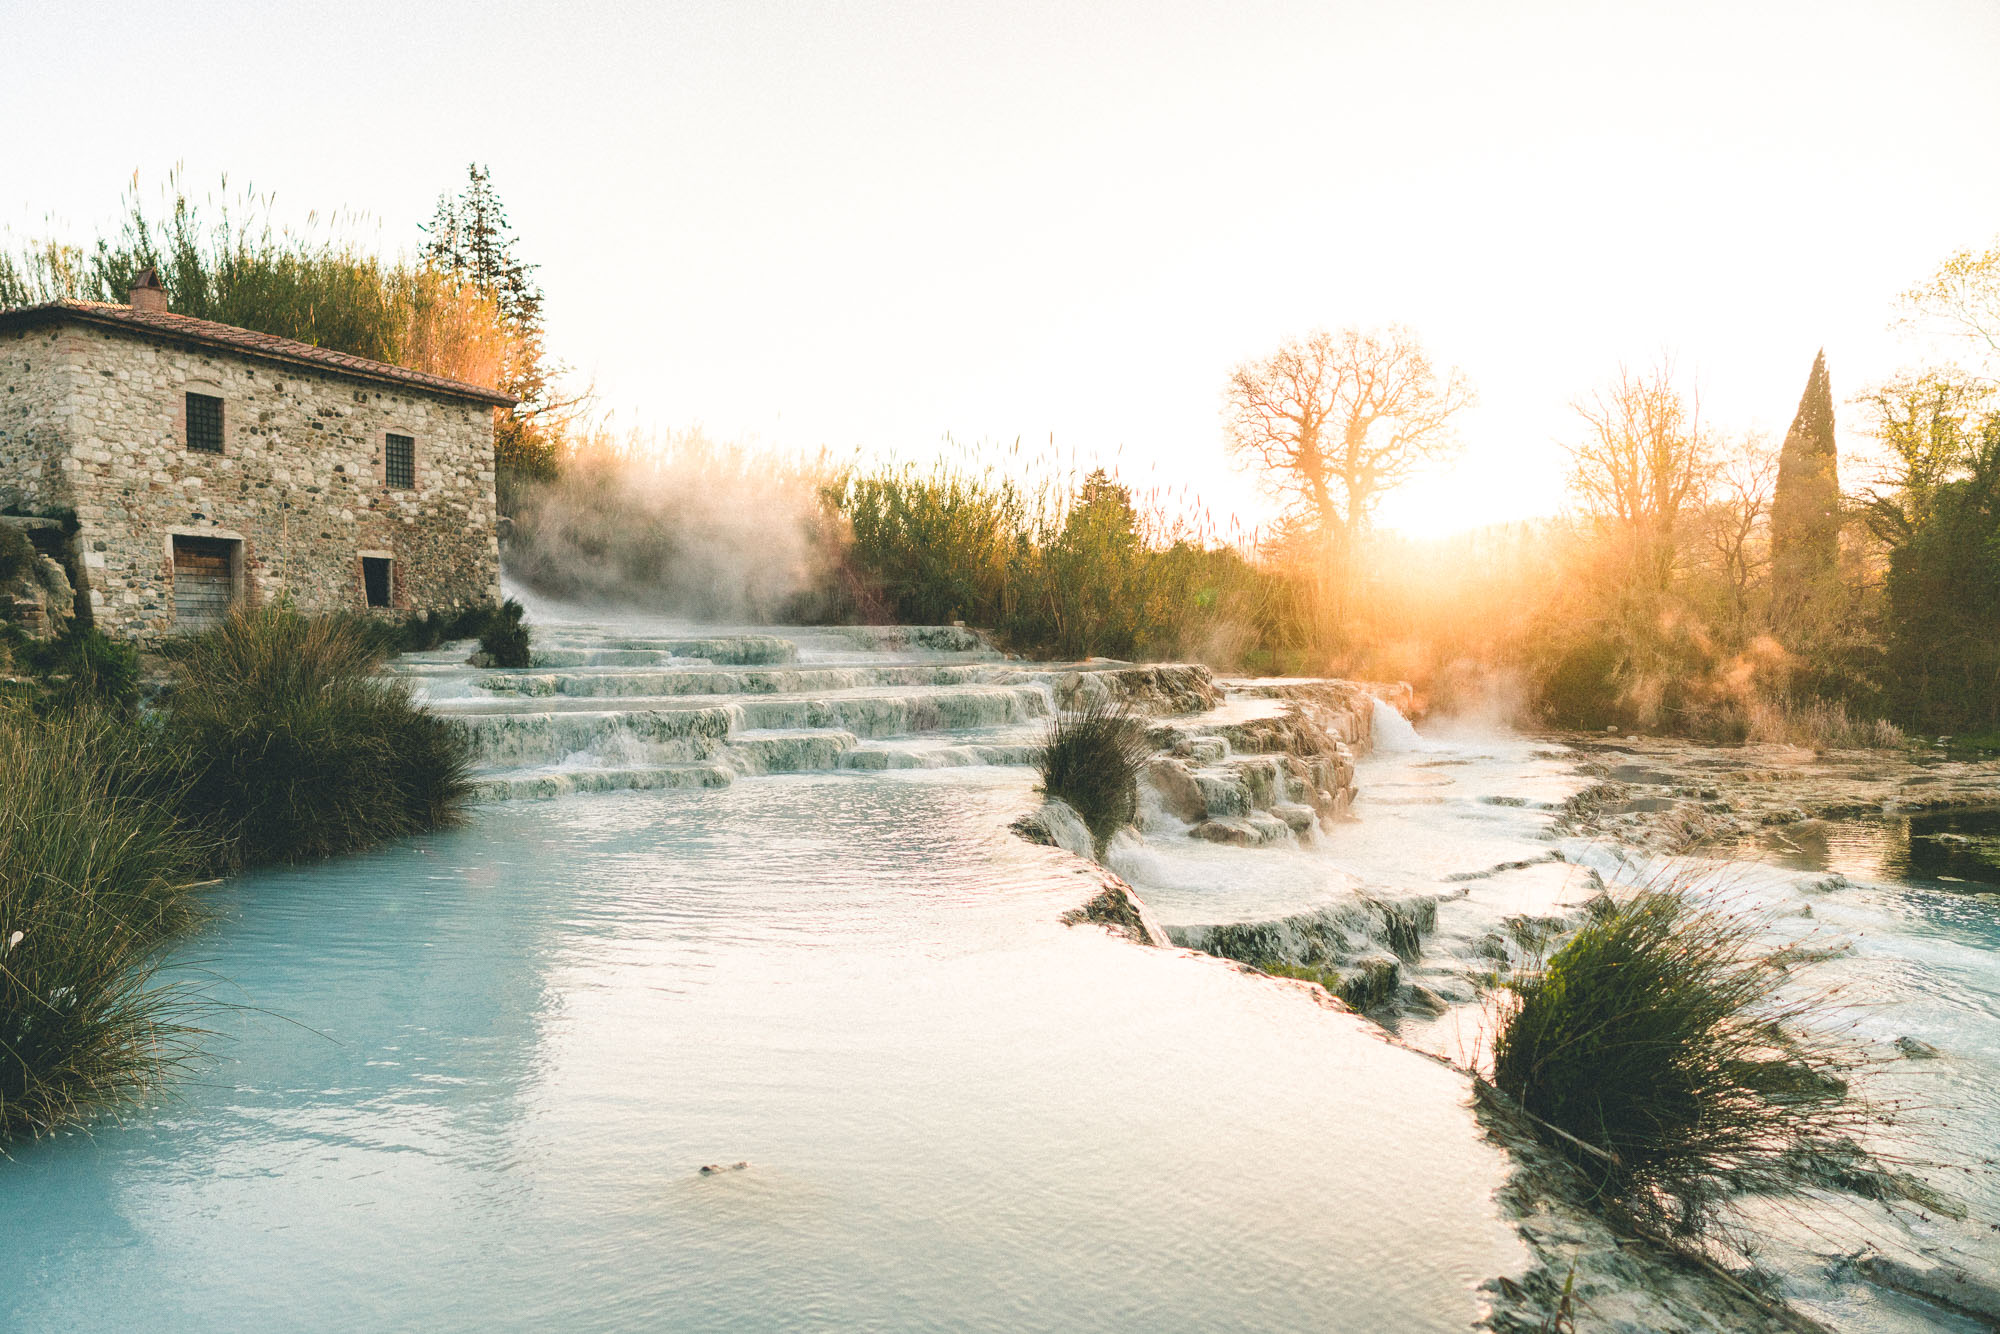 A natural thermal bath mineral hot springs in Tuscany, Italy